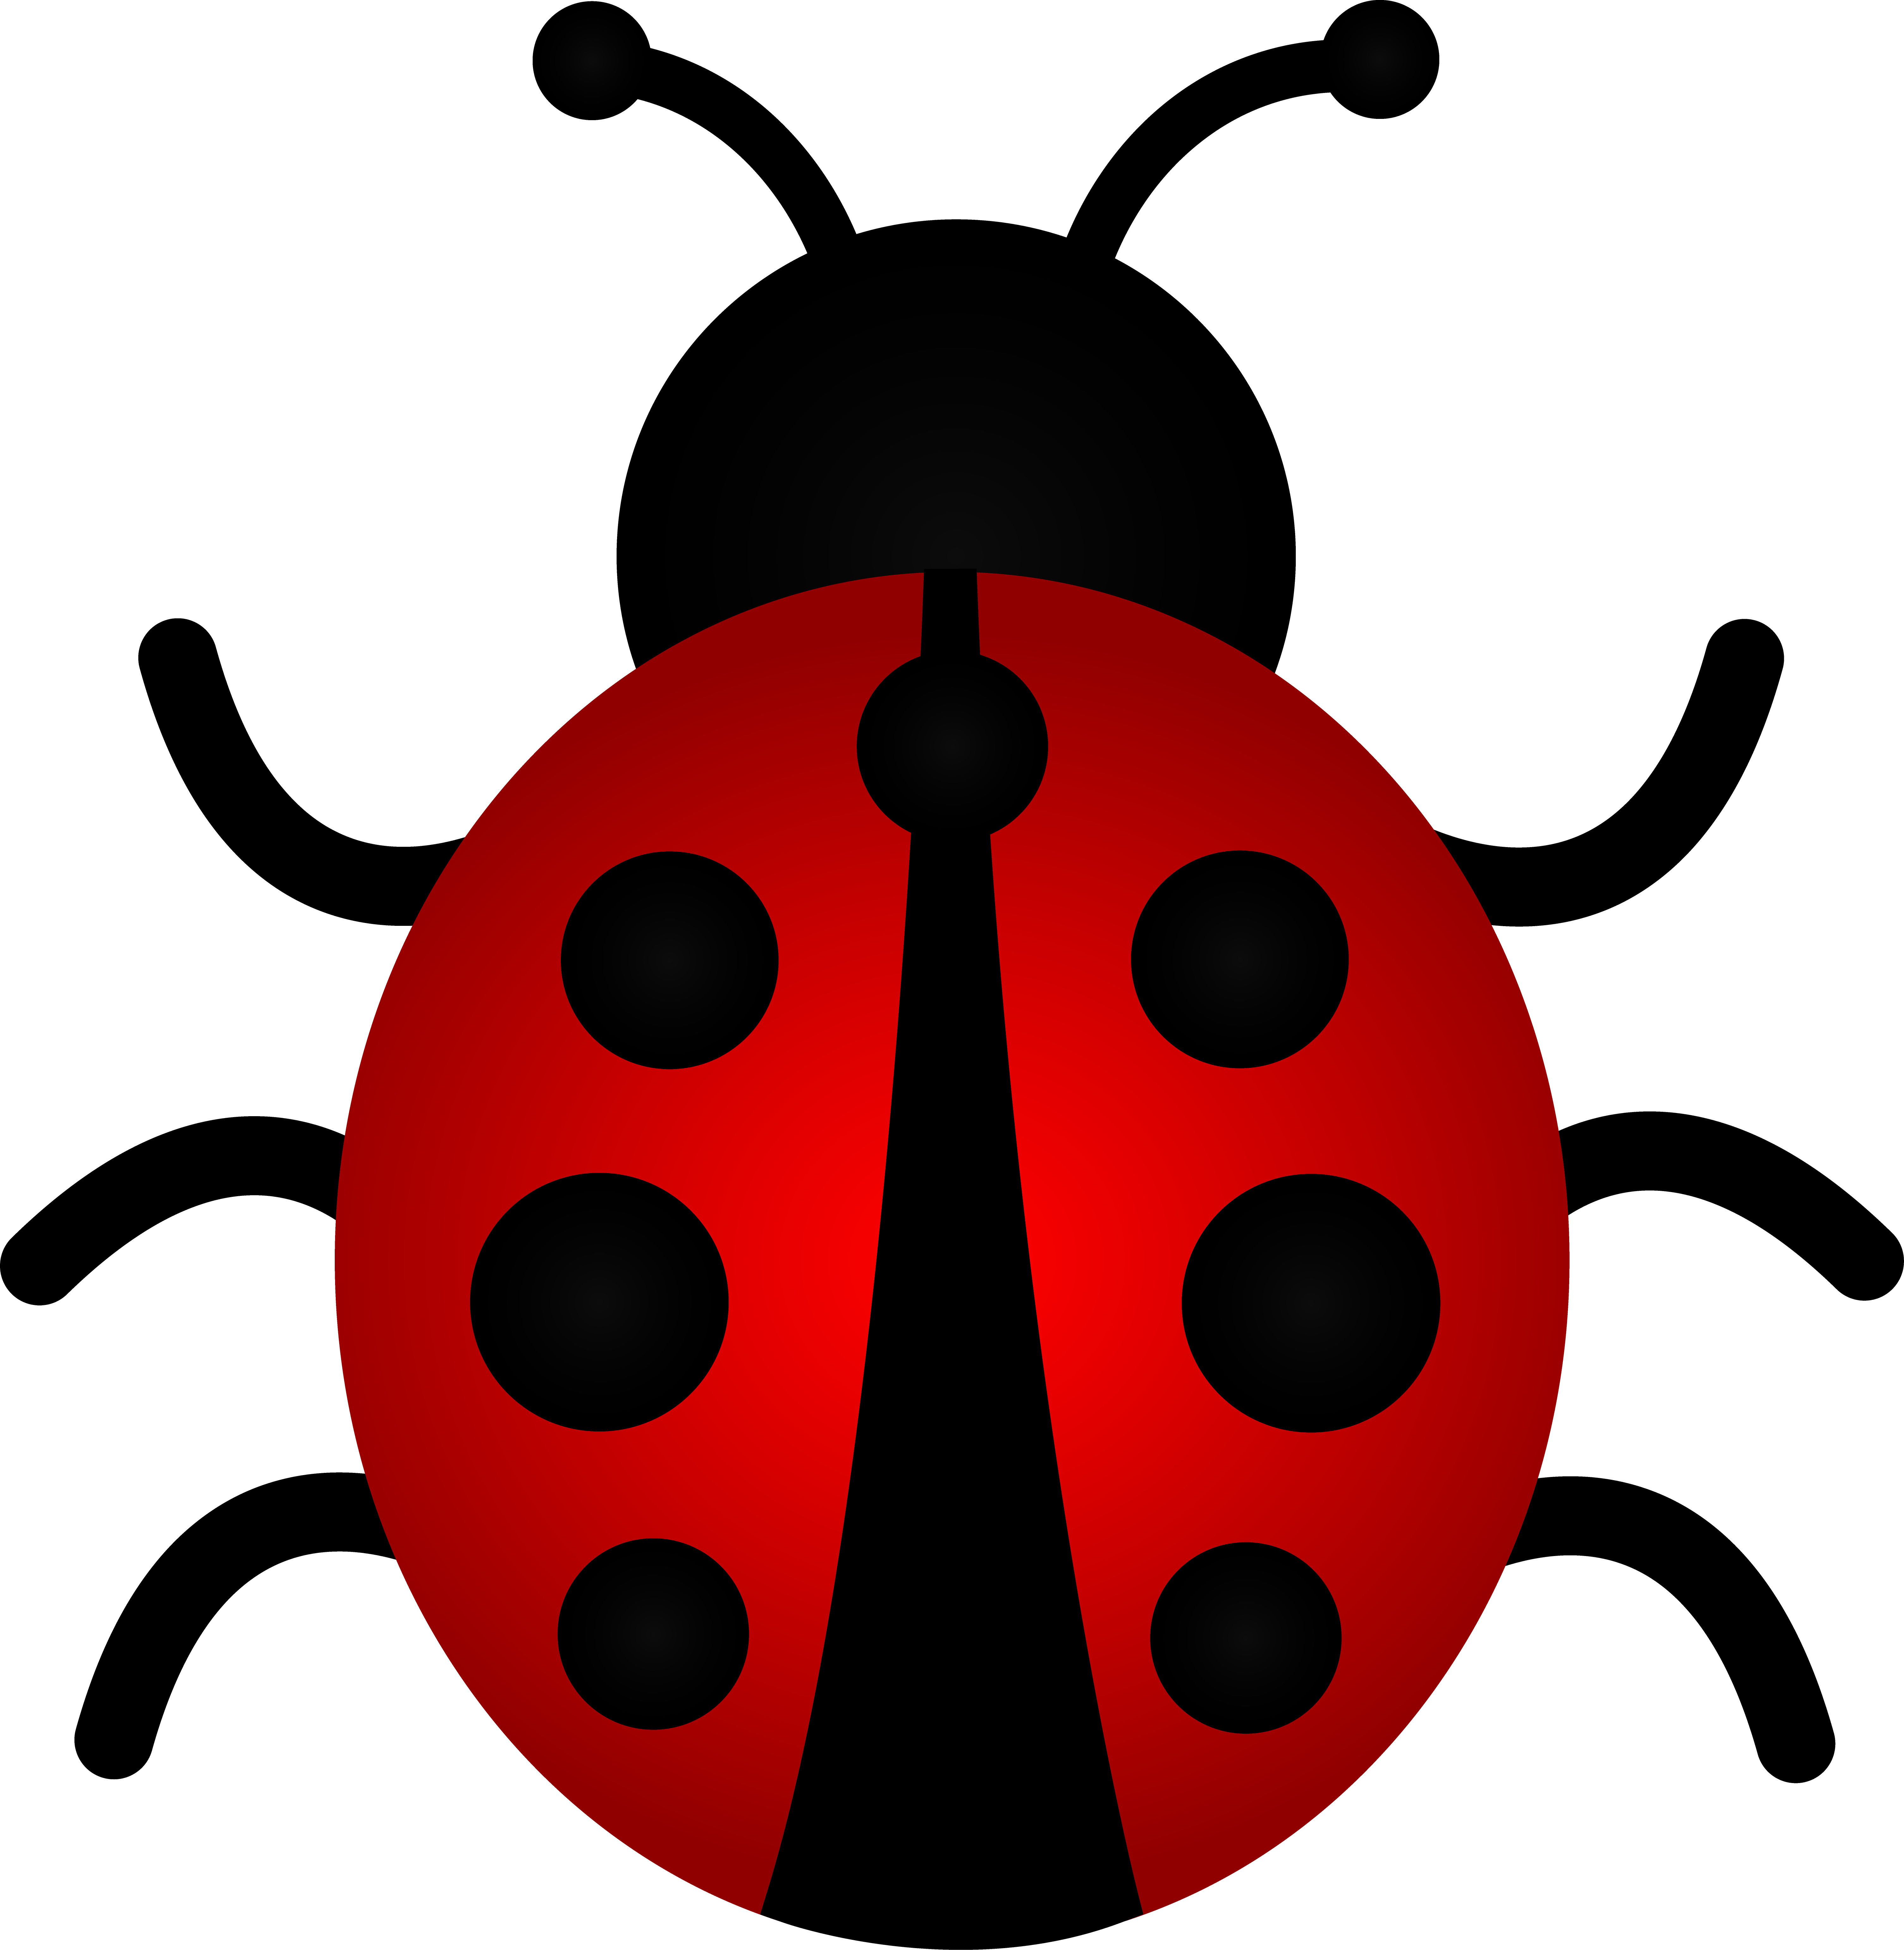 Red Ladybug Clip Art | Clipart Panda - Free Clipart Images